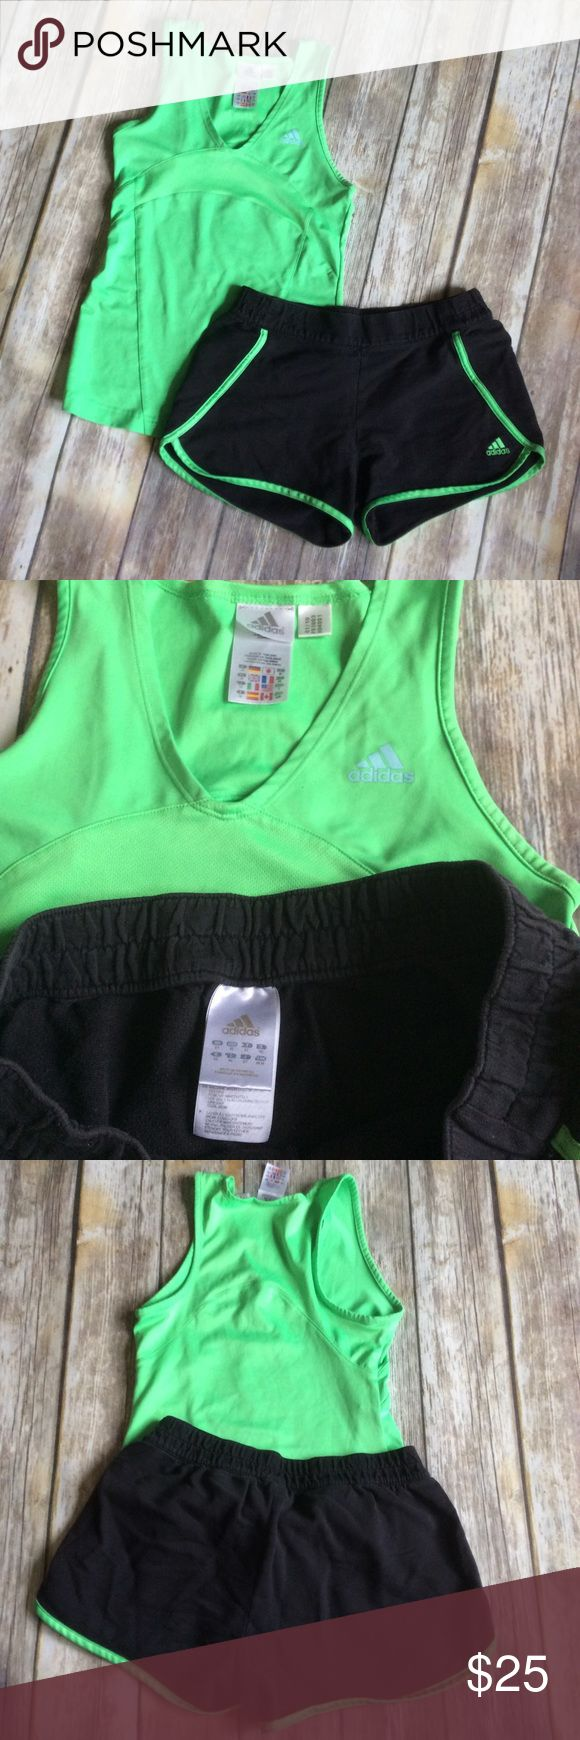 Adidas Athletic Tank & Shorts Set size S/M Great condition neon green tight fit athletic tank with black and green shorts. The top is a size small and the bottoms are a size medium. The shorts show some fading from washing but are still in great shape. ❌no trades, holds, or lowball offers. ✅Clean and smoke free home, quick shipping, bundle discount, always! 🎁Free gift with $15+ bundle. Adidas Shorts